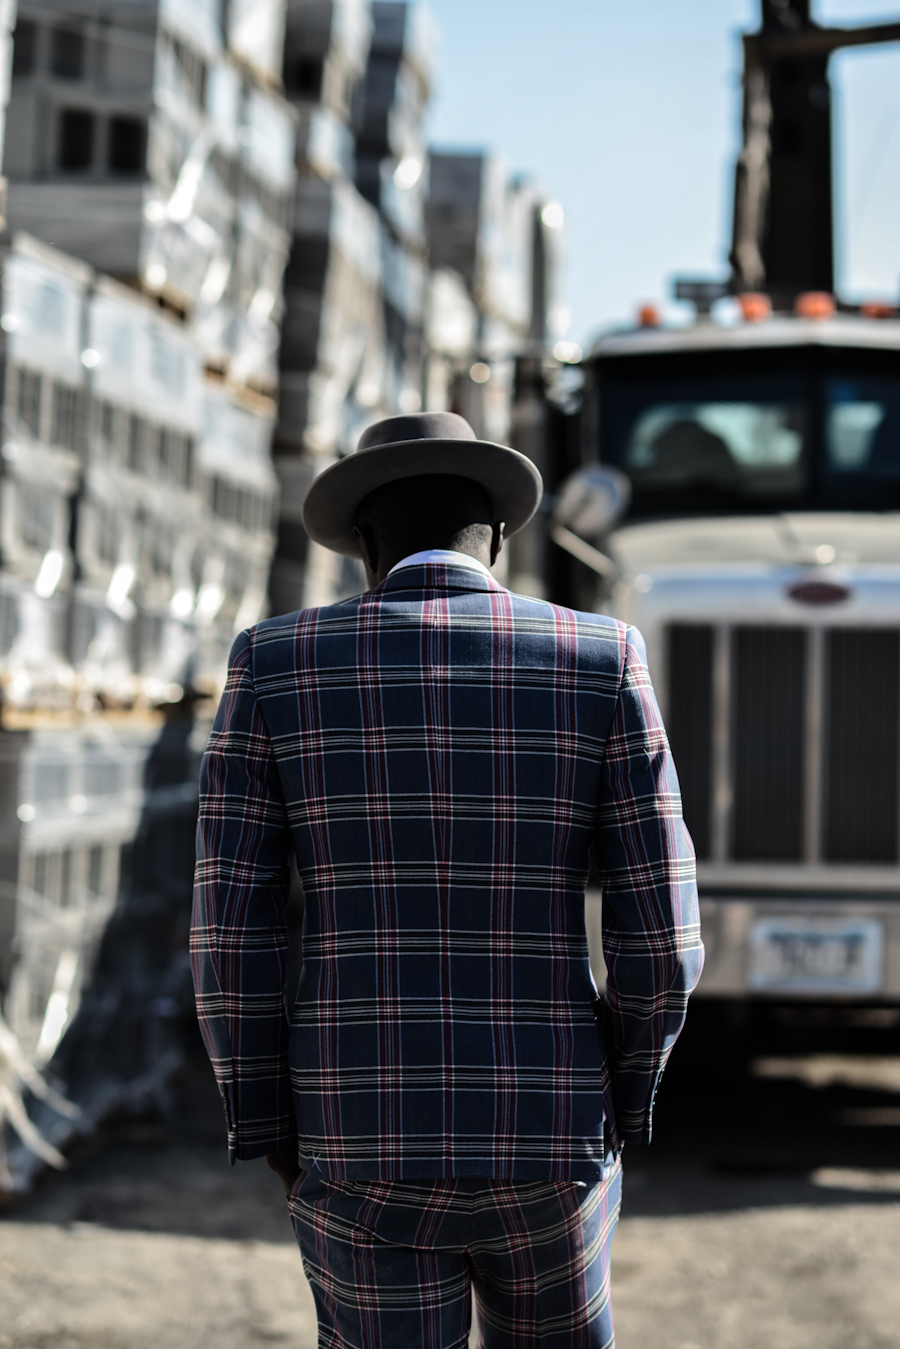 Moods-of-Norway-Dapper-Lou-Mass-Fall-East-Flatbush-Brooklyn-Plaid-Suit-18.jpg